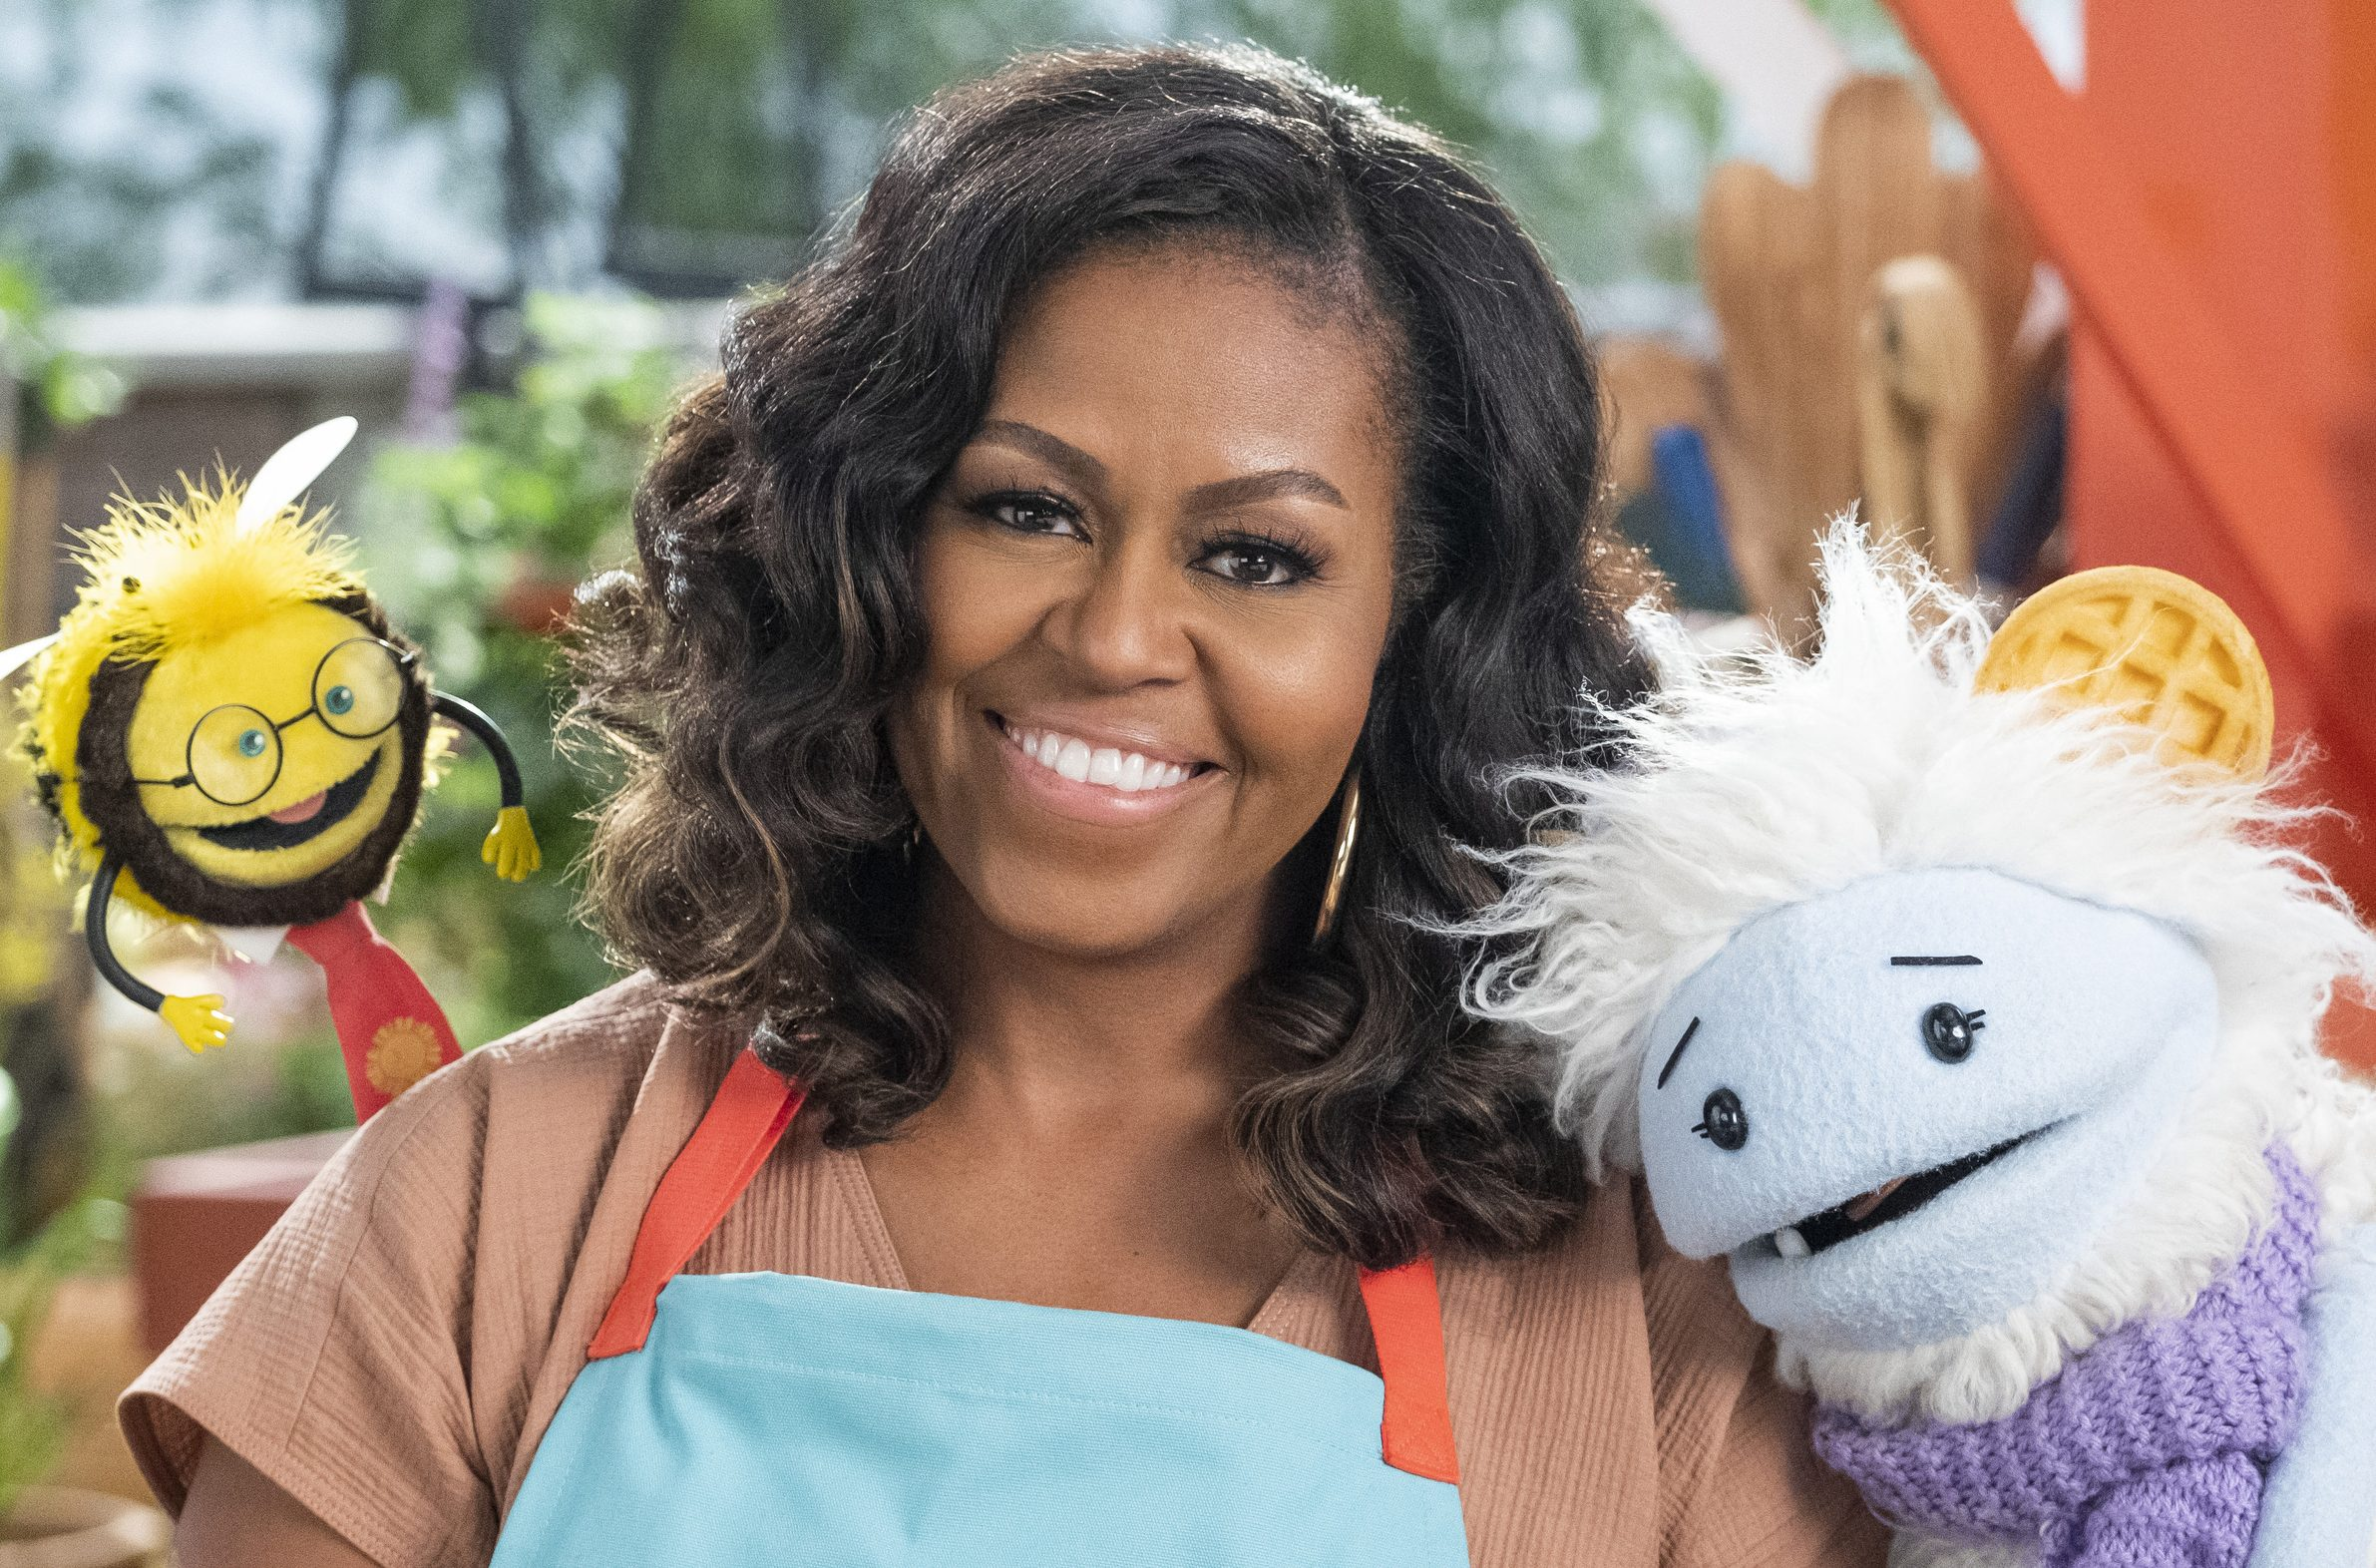 Michelle Obama Announces Netflix Children's Cooking Show 'Waffle + Mochi'